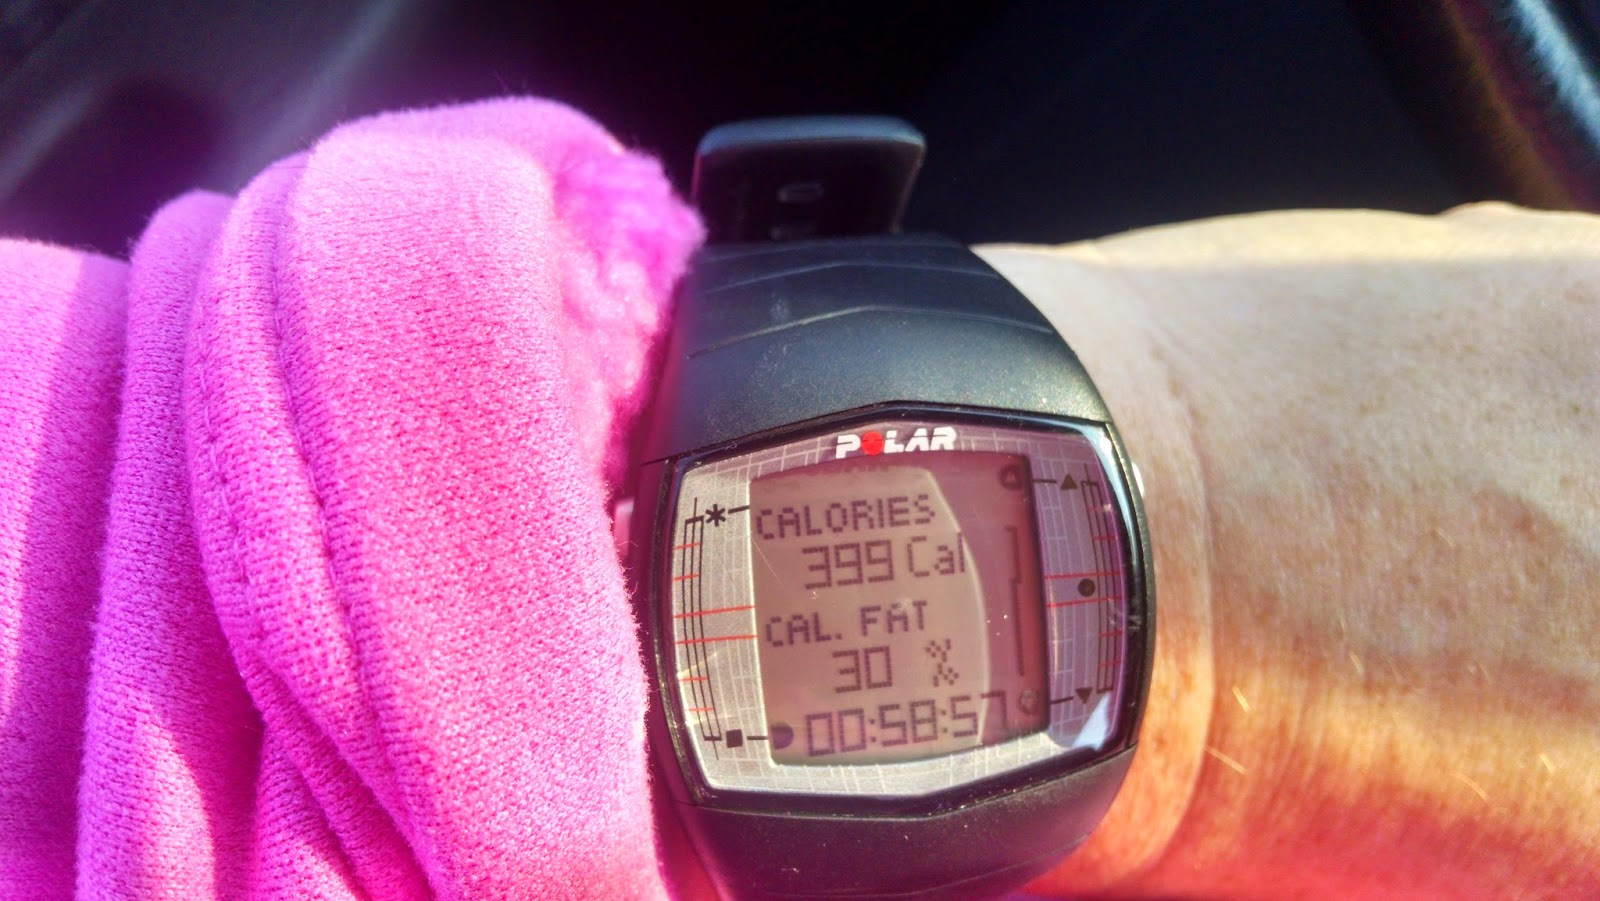 Polar HR Monitor Watch - Track Calories Burned!